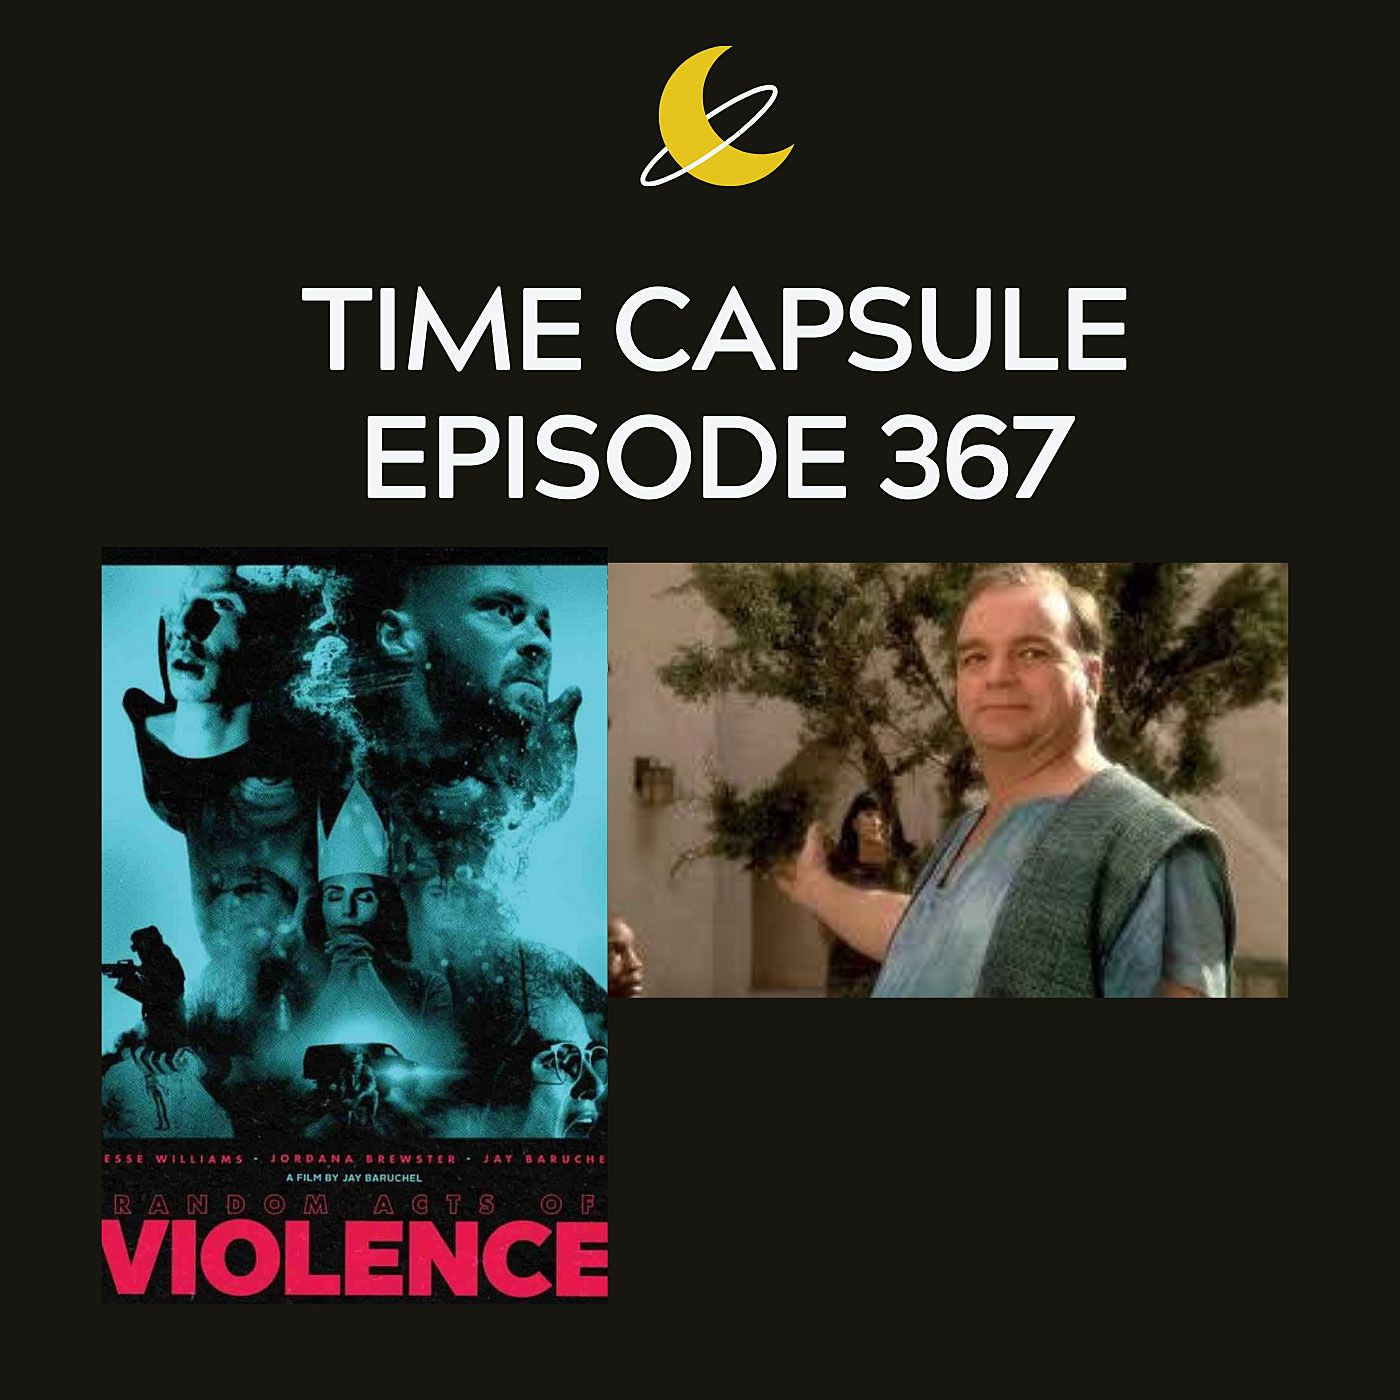 Time Capsule Episode 367